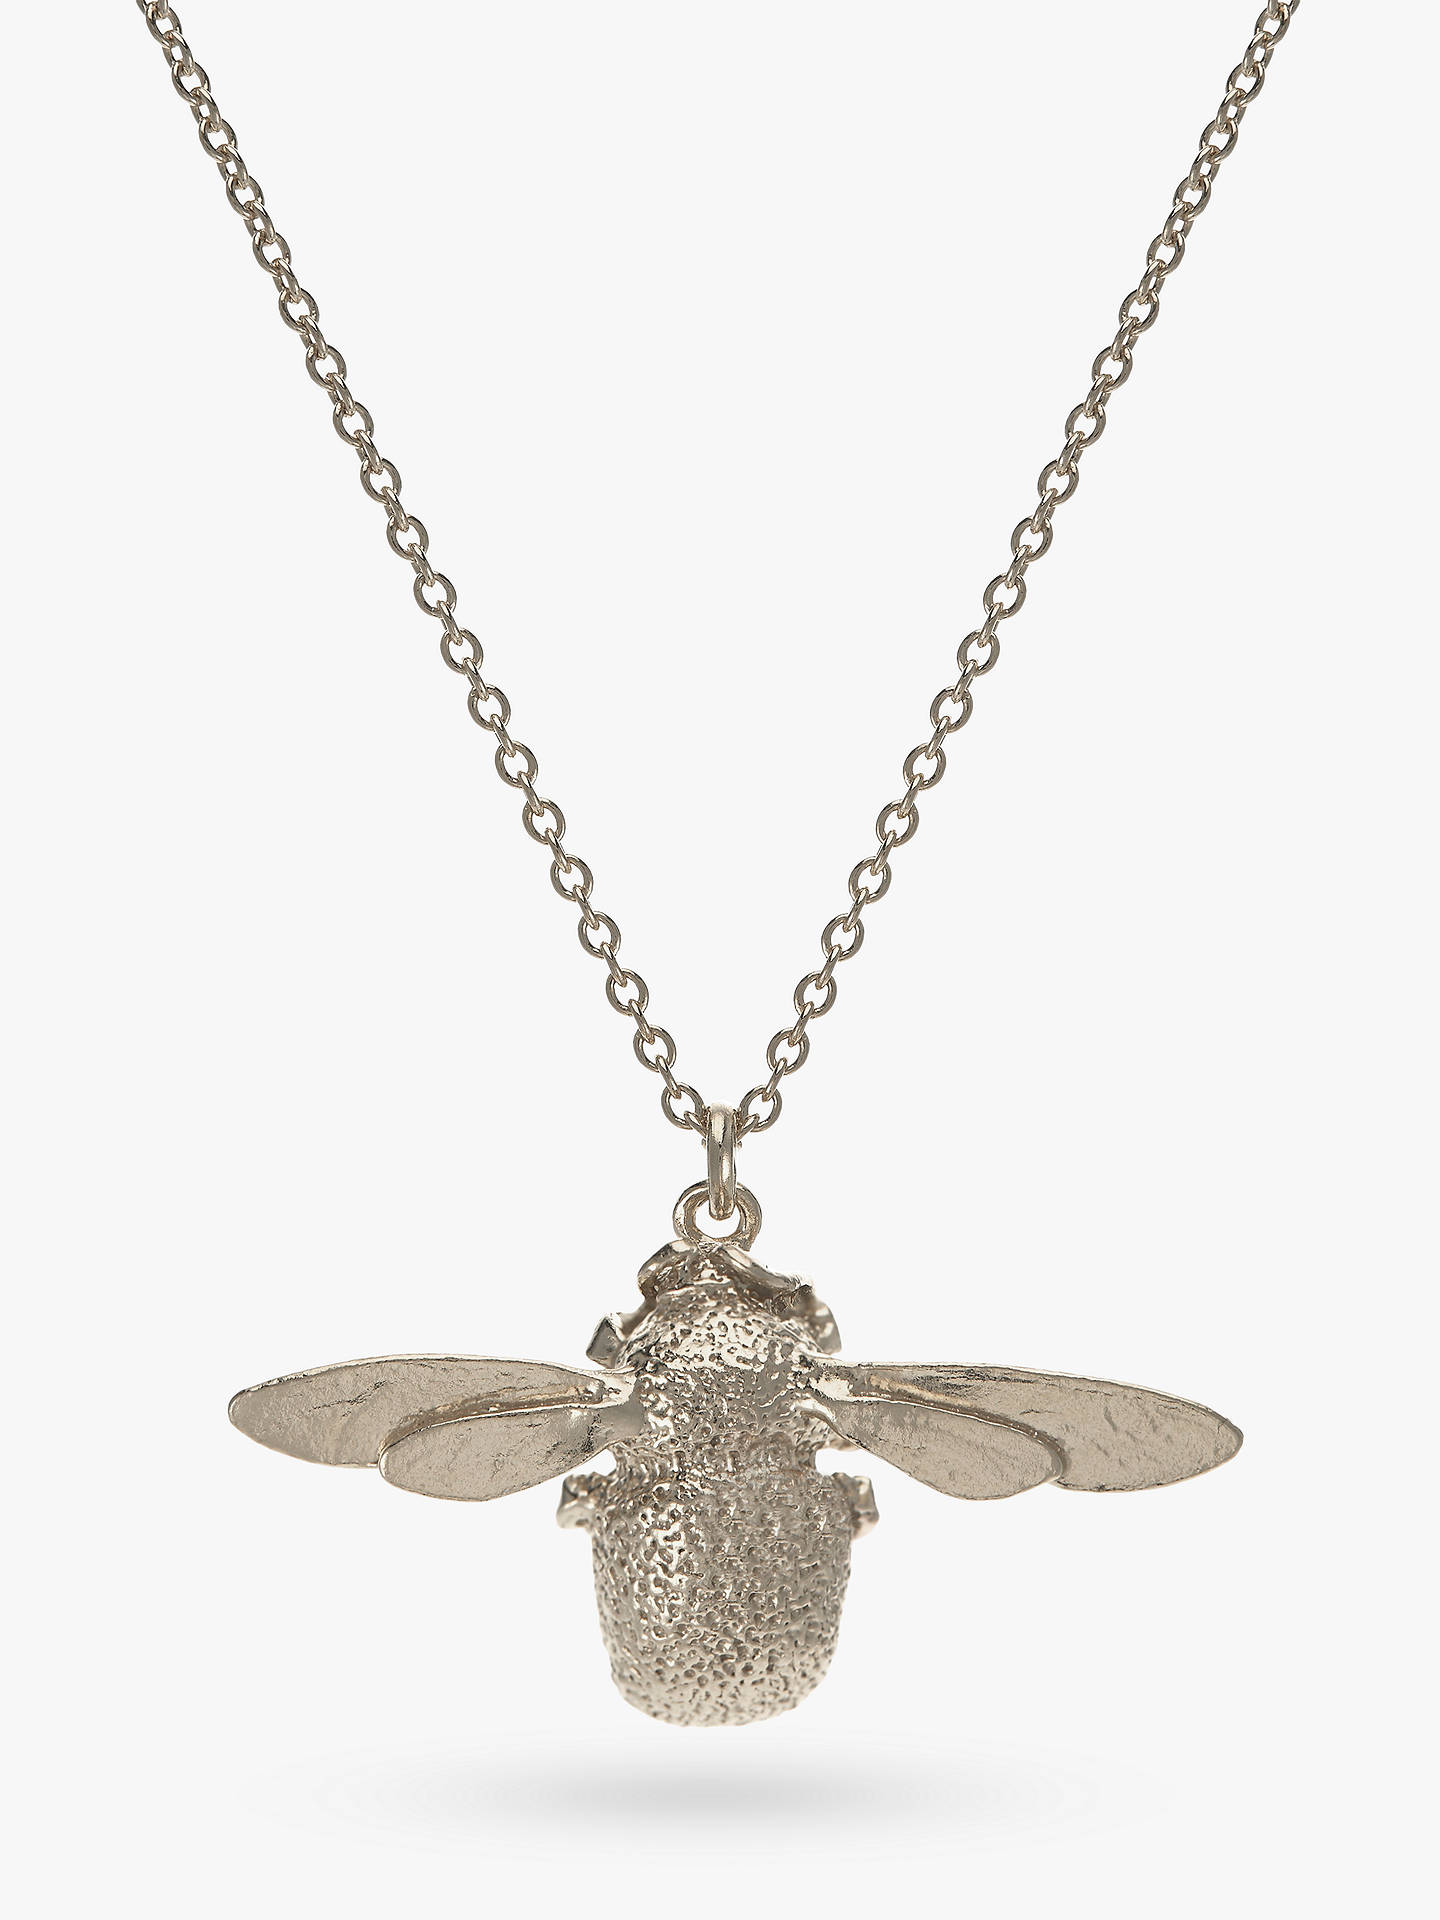 BuyAlex Monroe Sterling Silver Bumble Bee Pendant Necklace, Silver Online at johnlewis.com